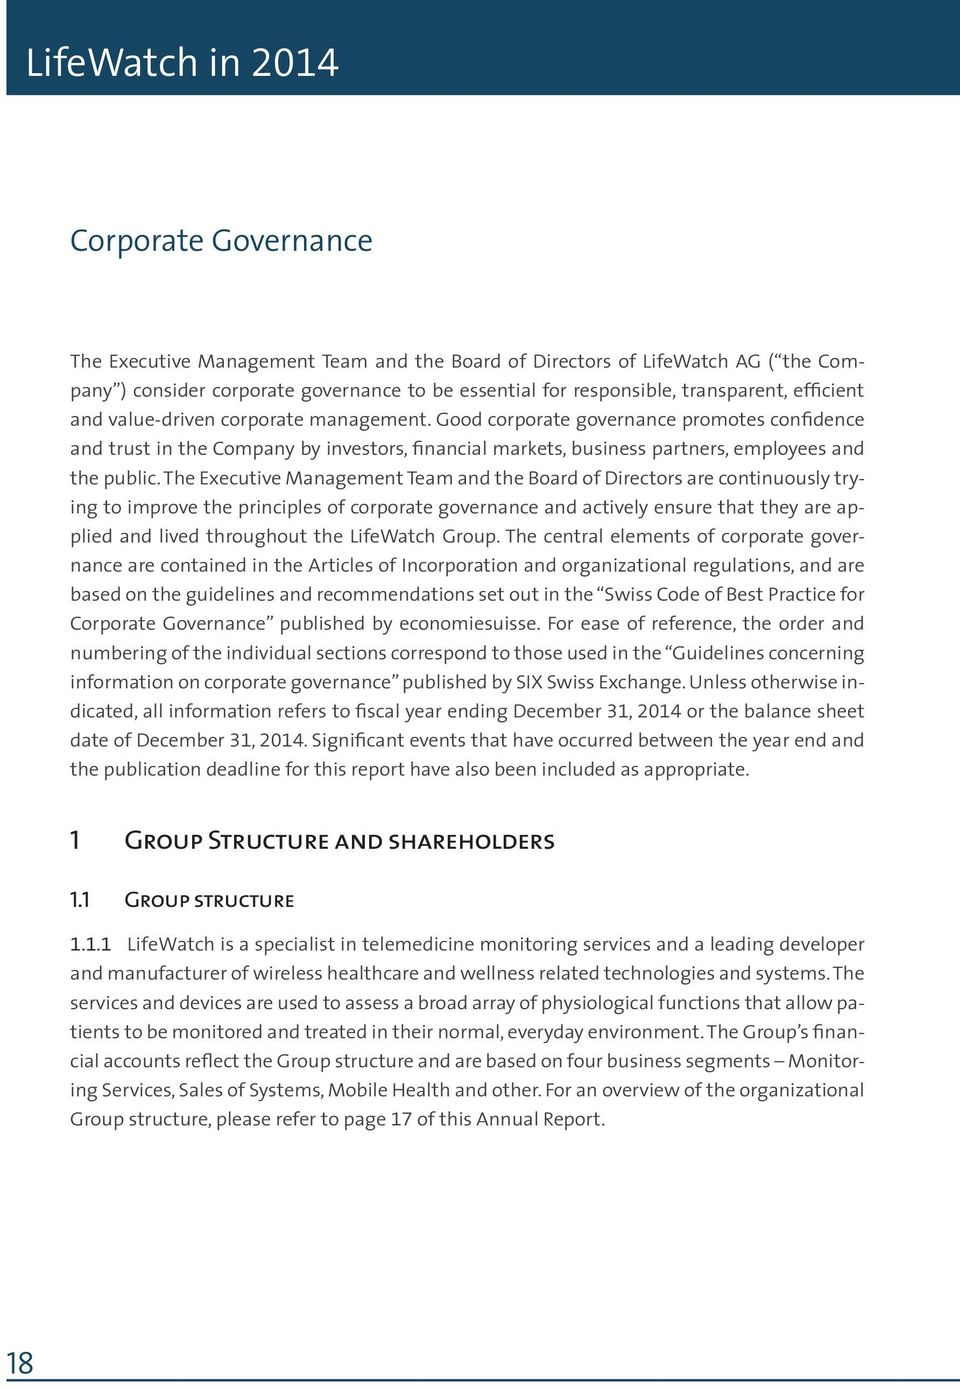 Good corporate governance promotes confidence and trust in the Company by investors, financial markets, business partners, employees and the public.